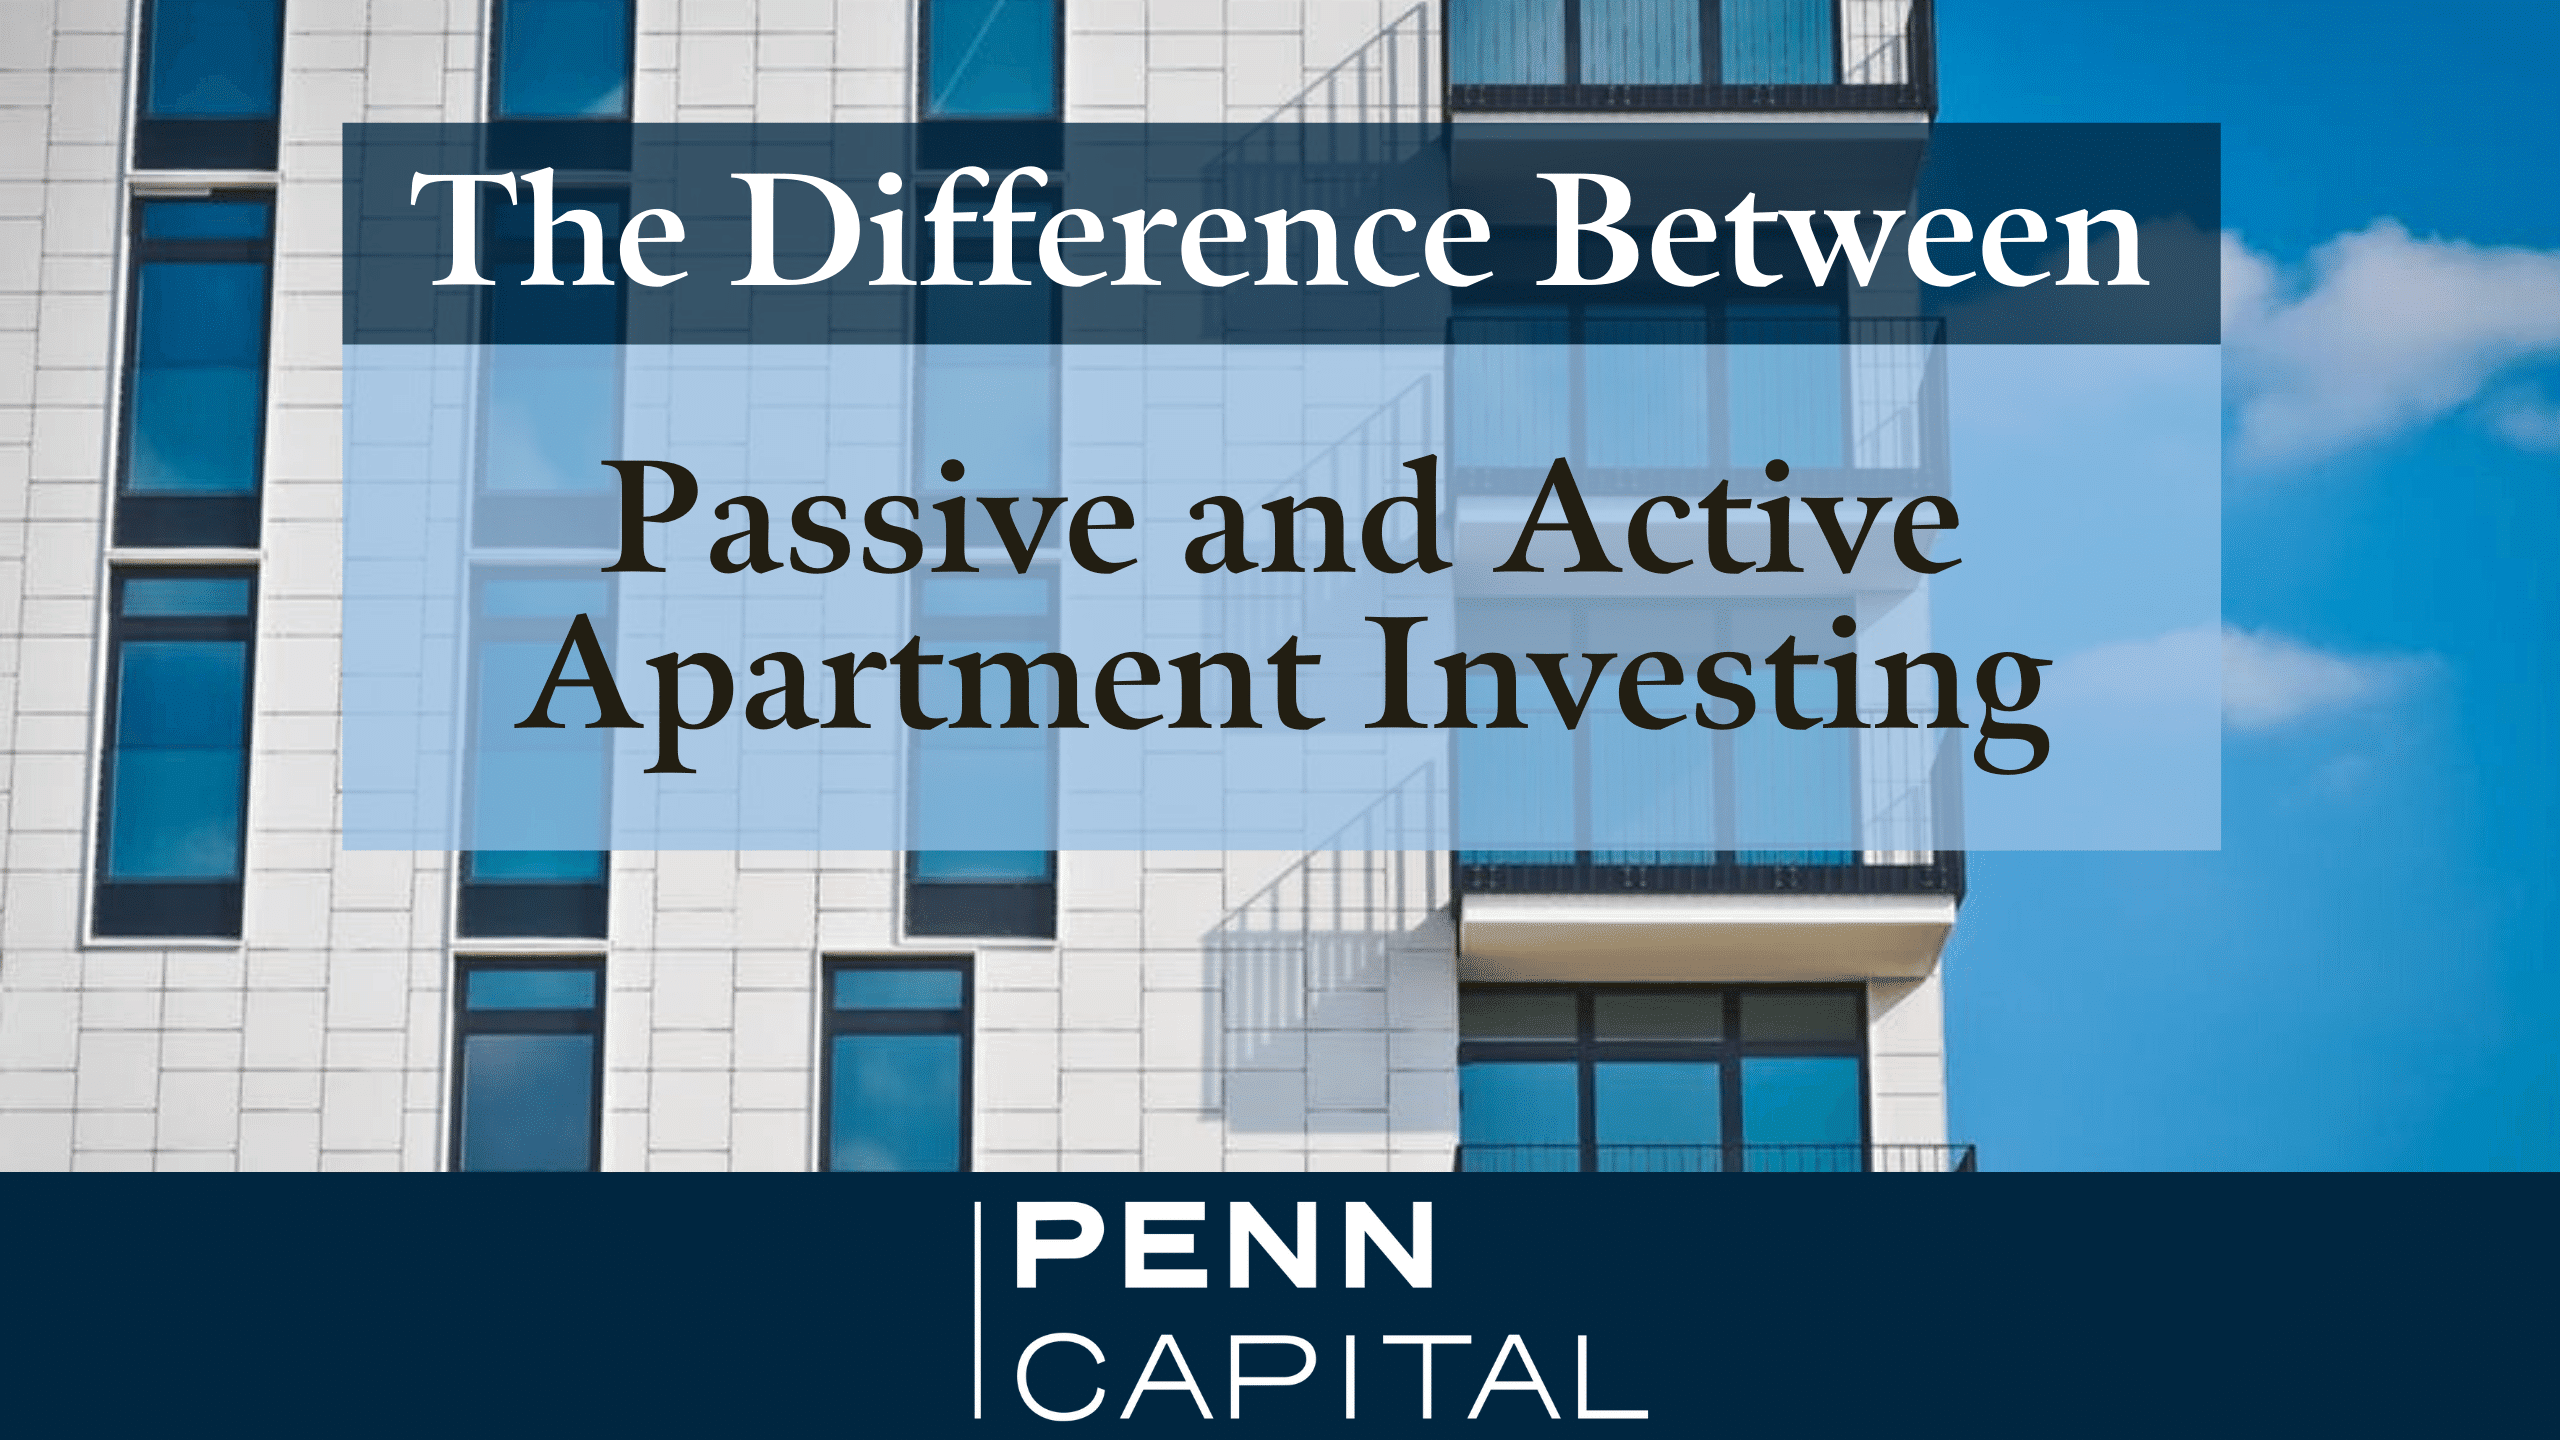 The difference between passive and active apartment investing - COMPRESSED